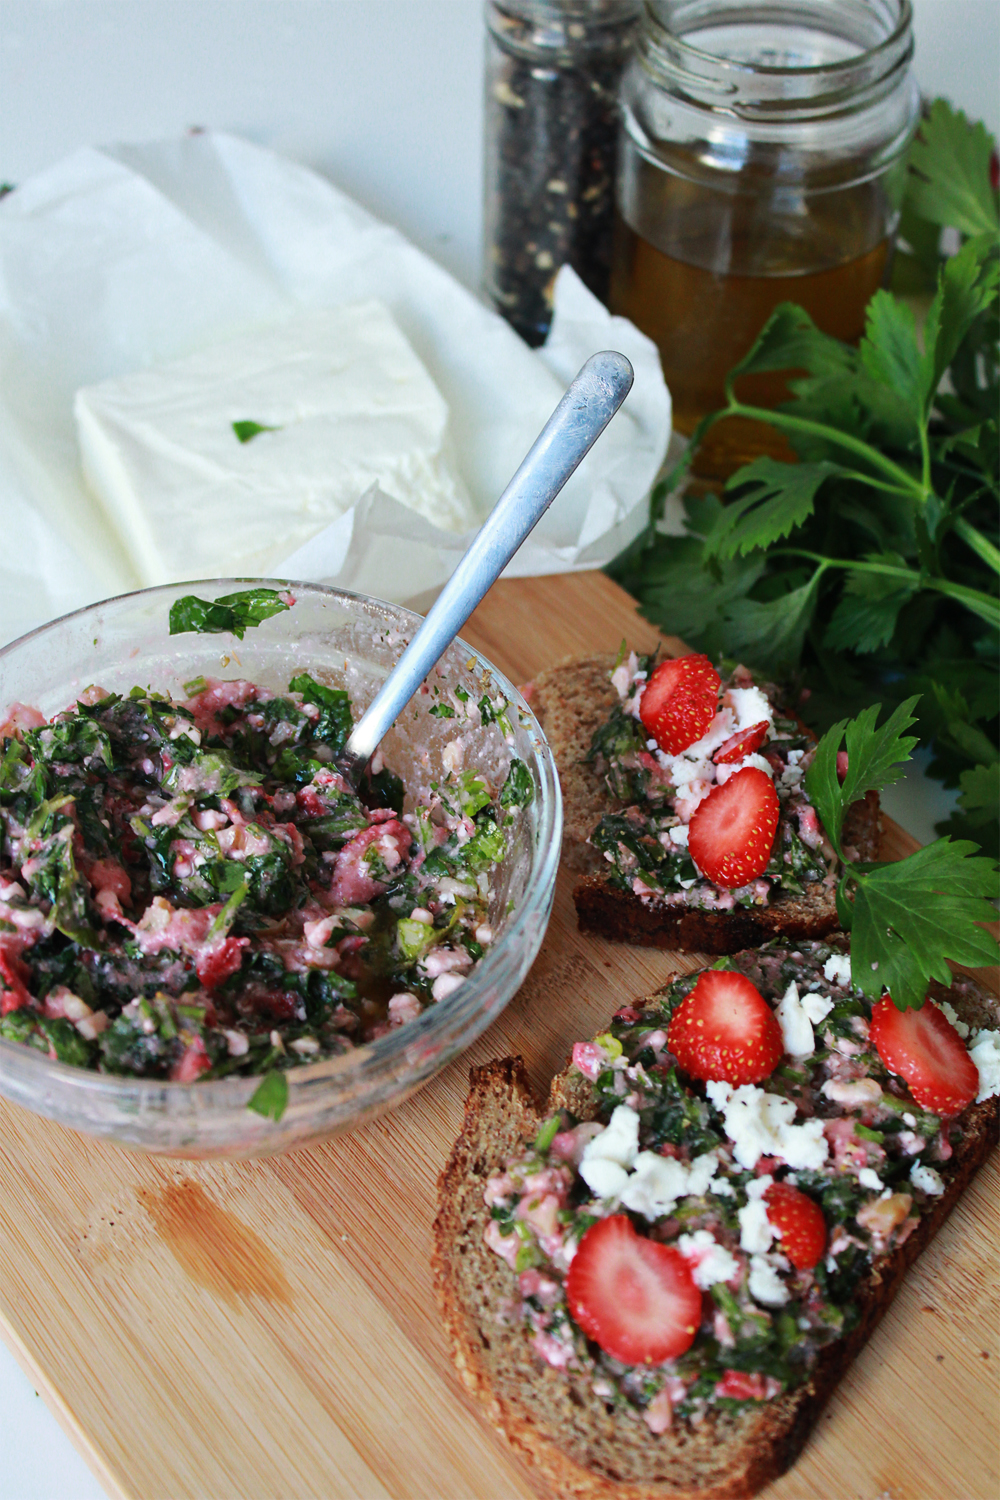 A pesto alternative - with parley, strawberries, walnuts and feta cheese (via inwhirlofinspiration.com)1